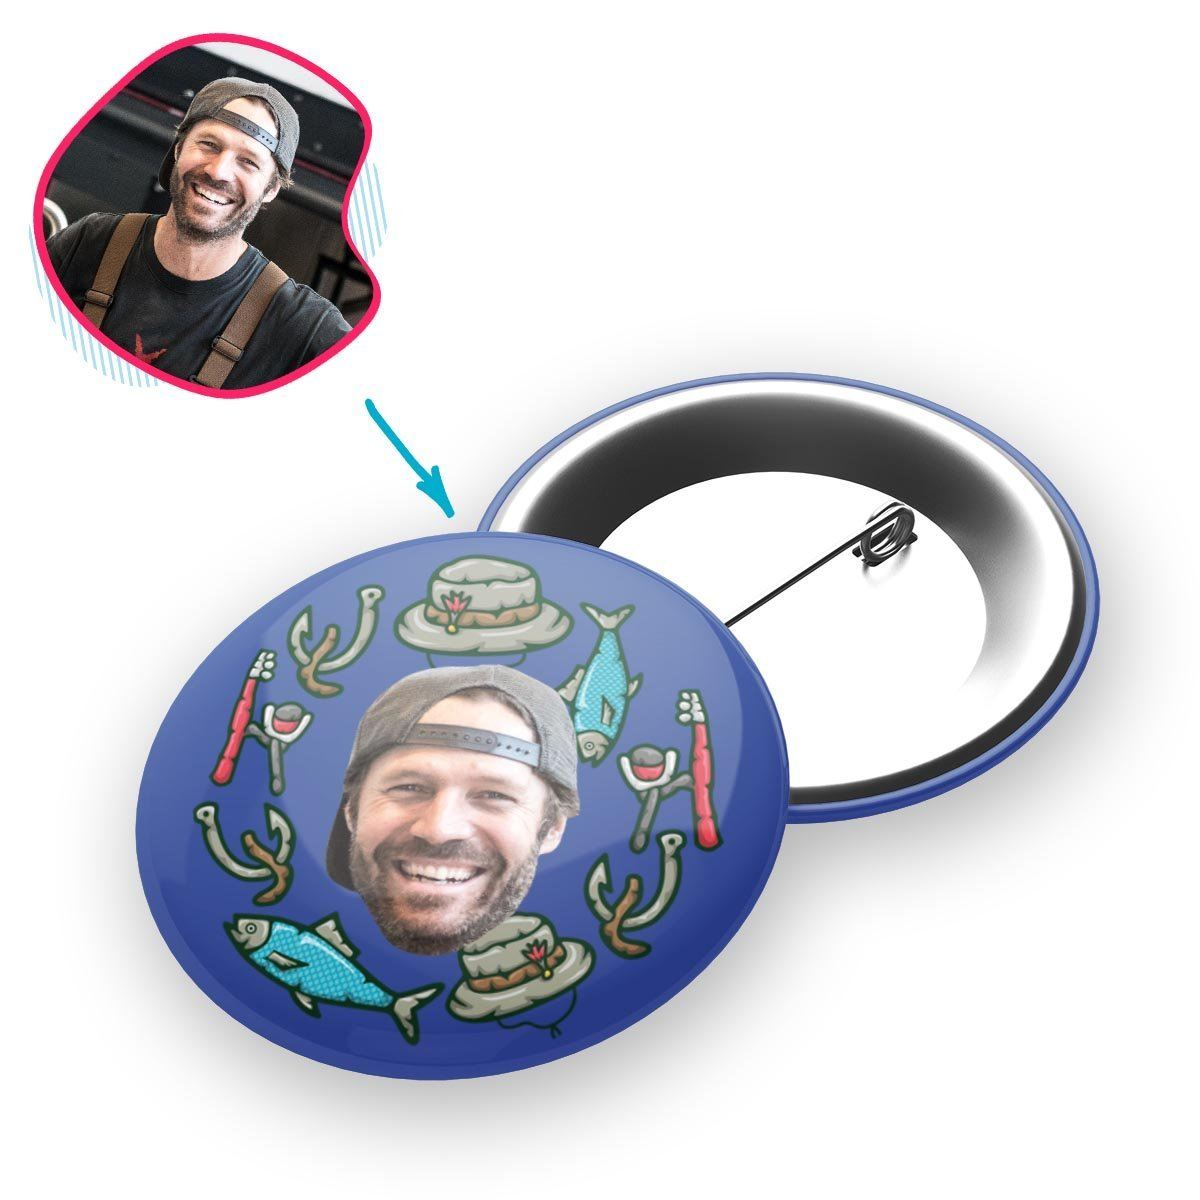 Darkblue Fishing personalized pin with photo of face printed on it